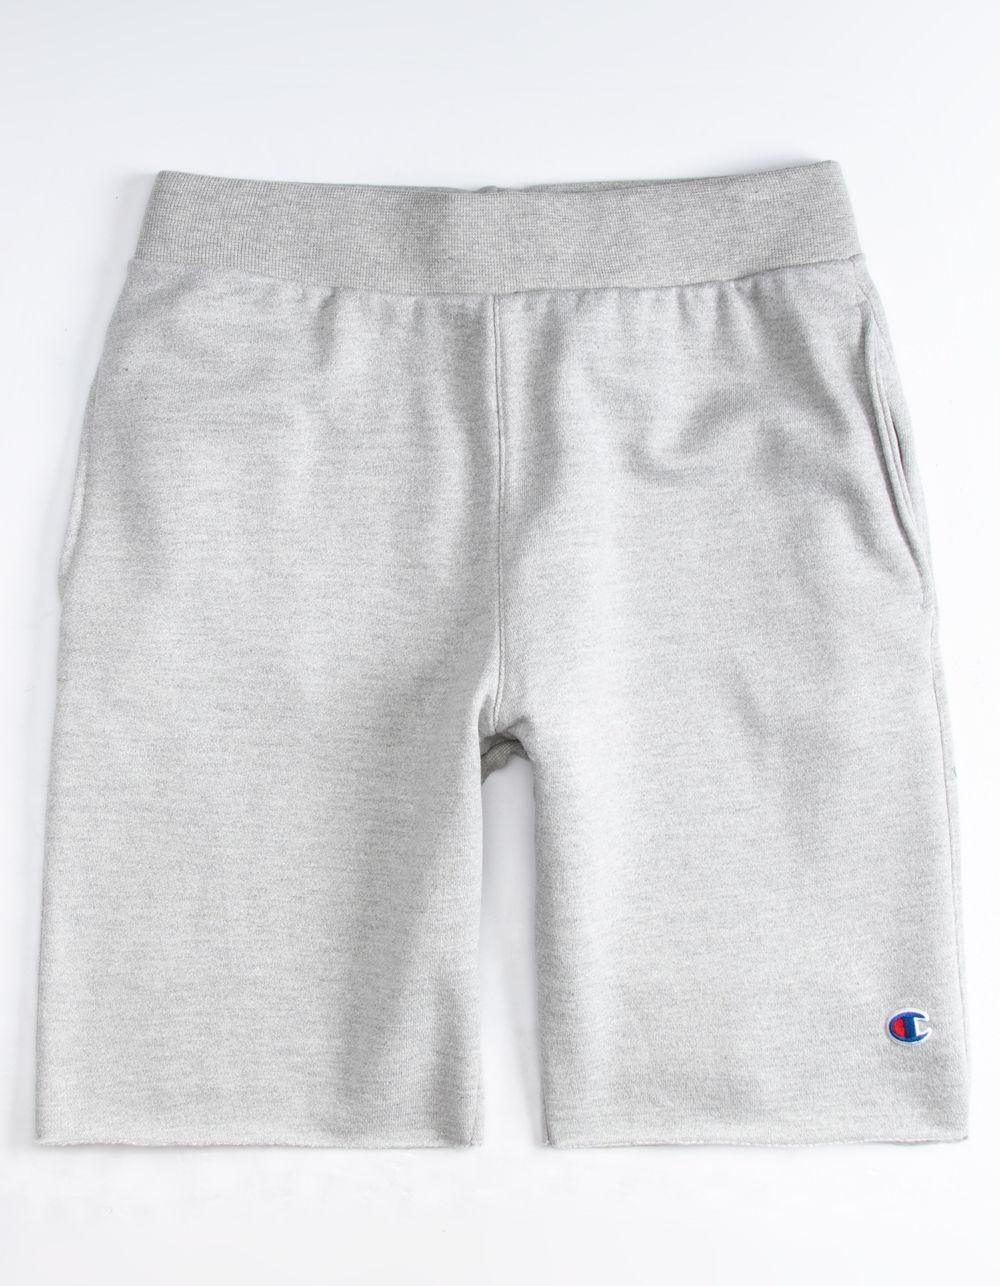 71771a91e38a2 Lyst - Champion Cut Off Mens Sweat Shorts in Gray for Men